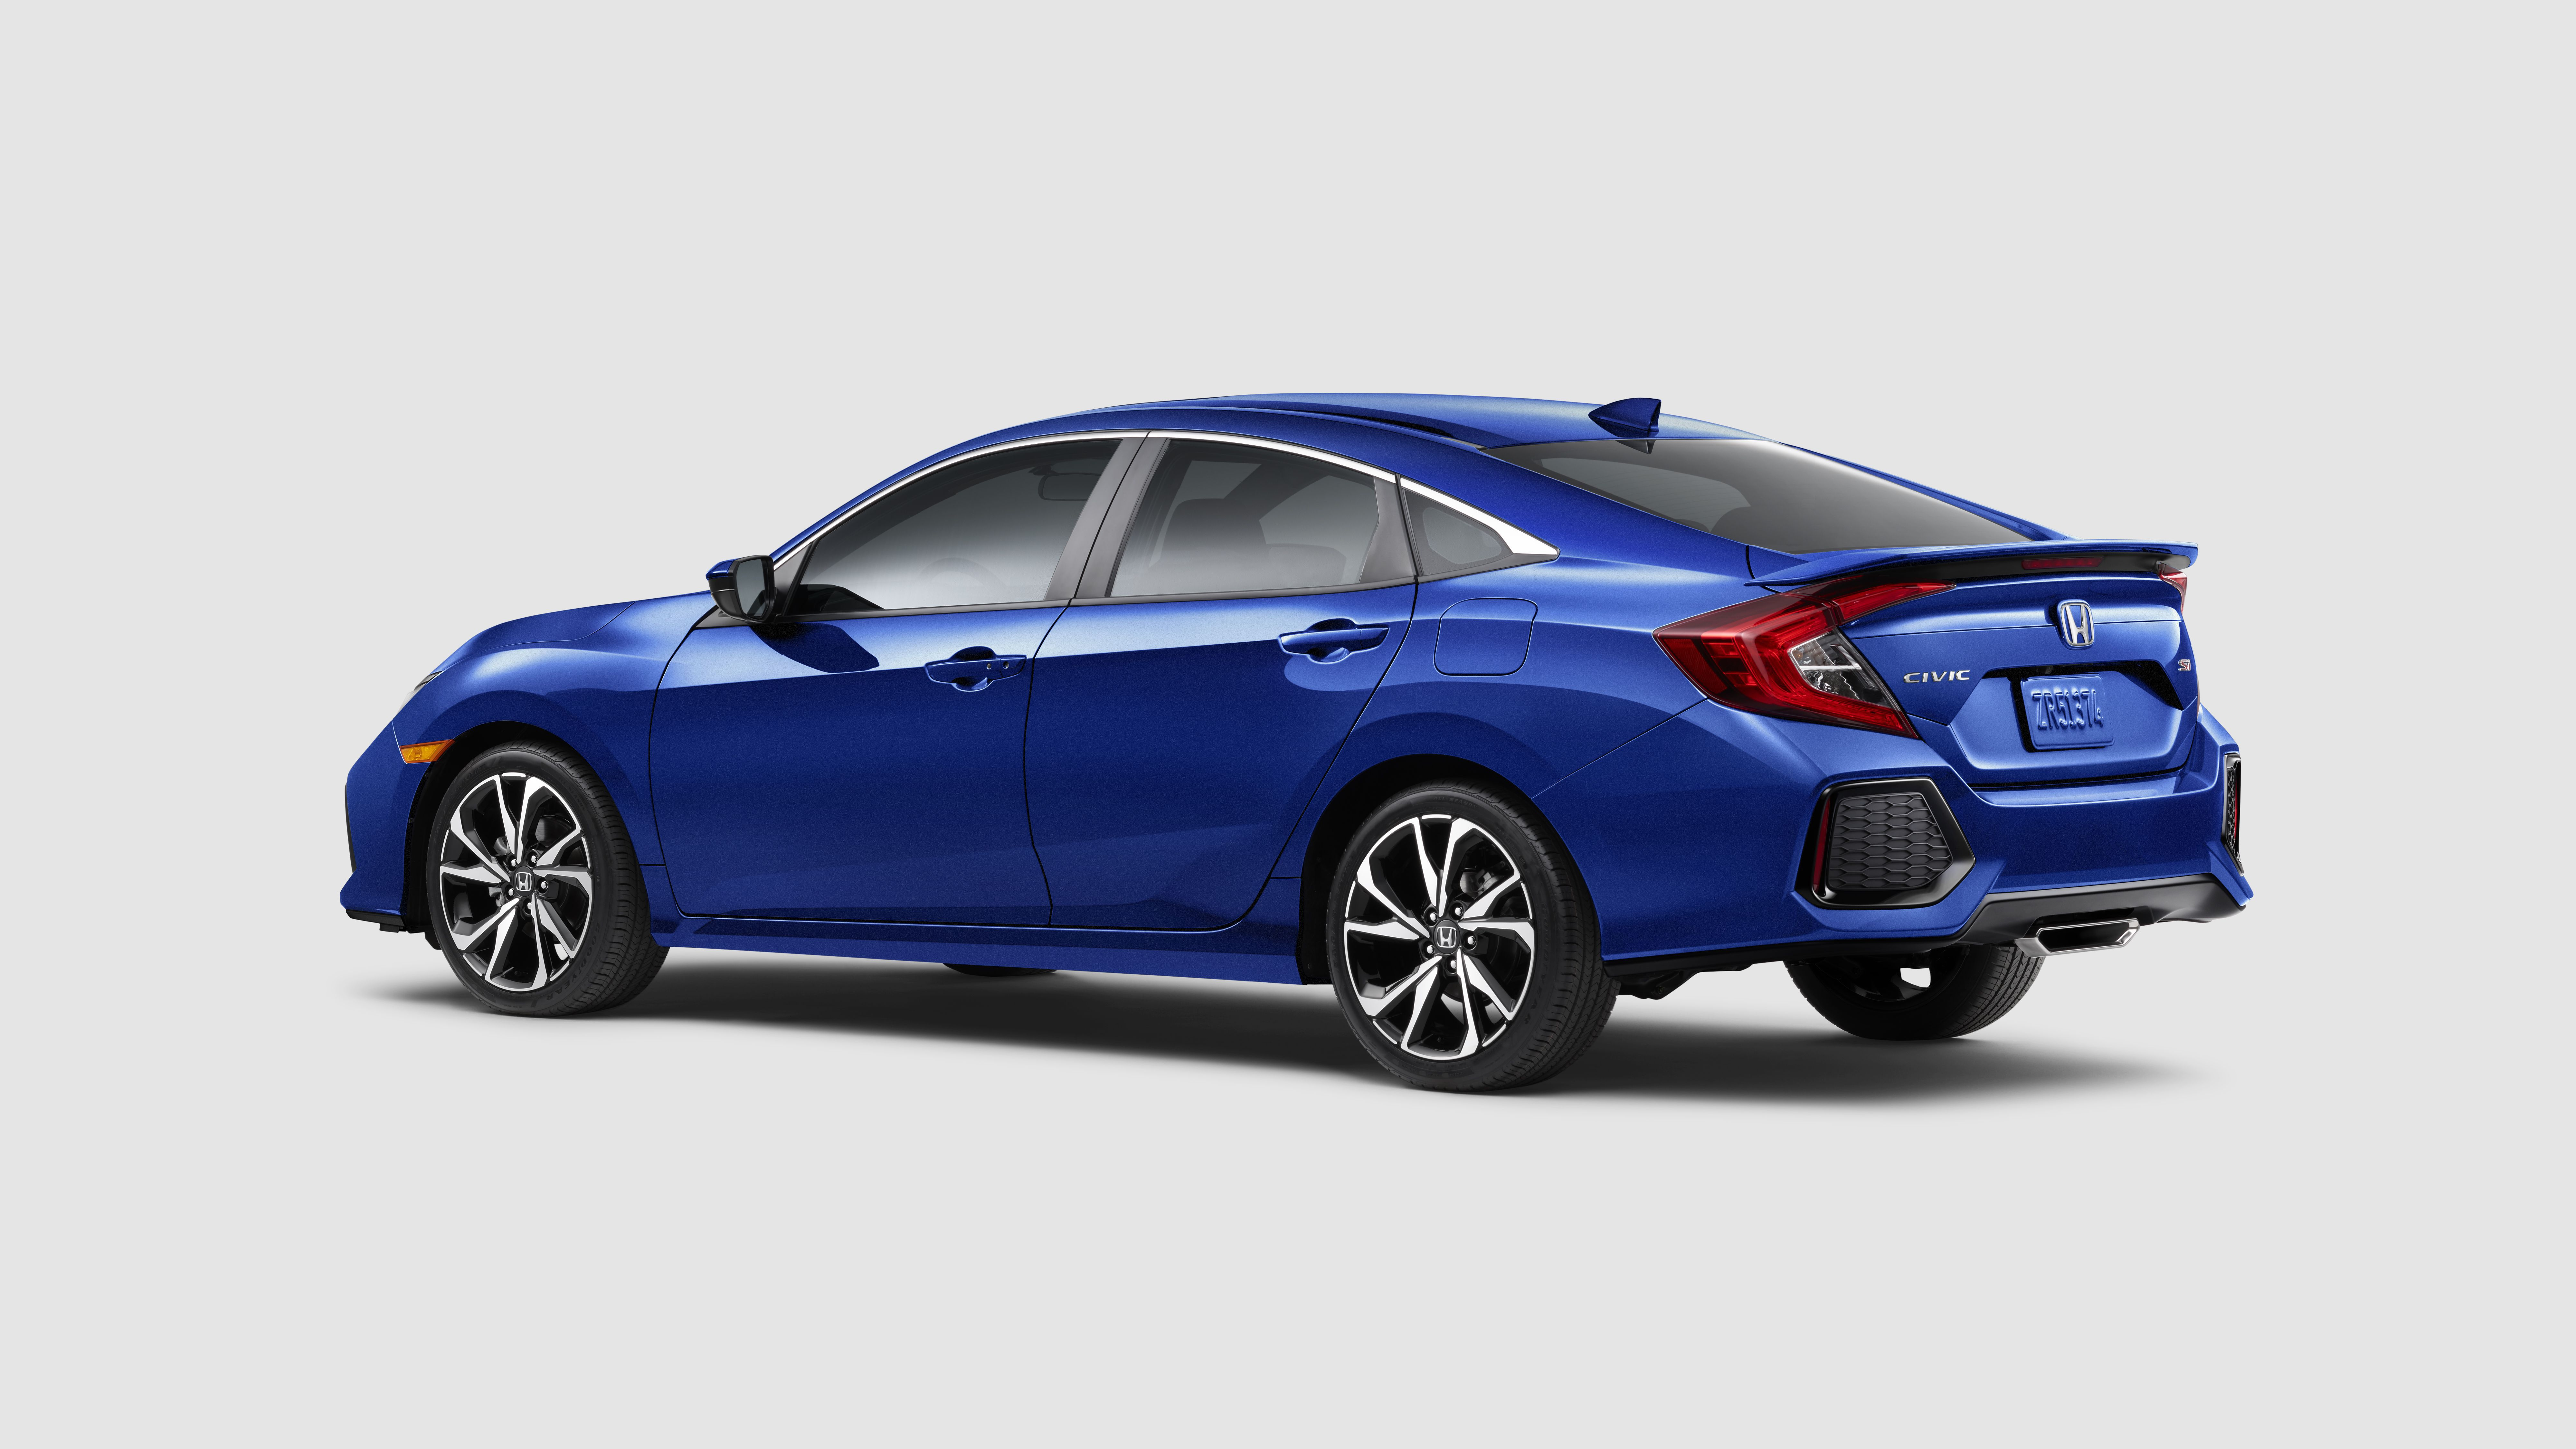 Honda Civic Si Sedan reviews big